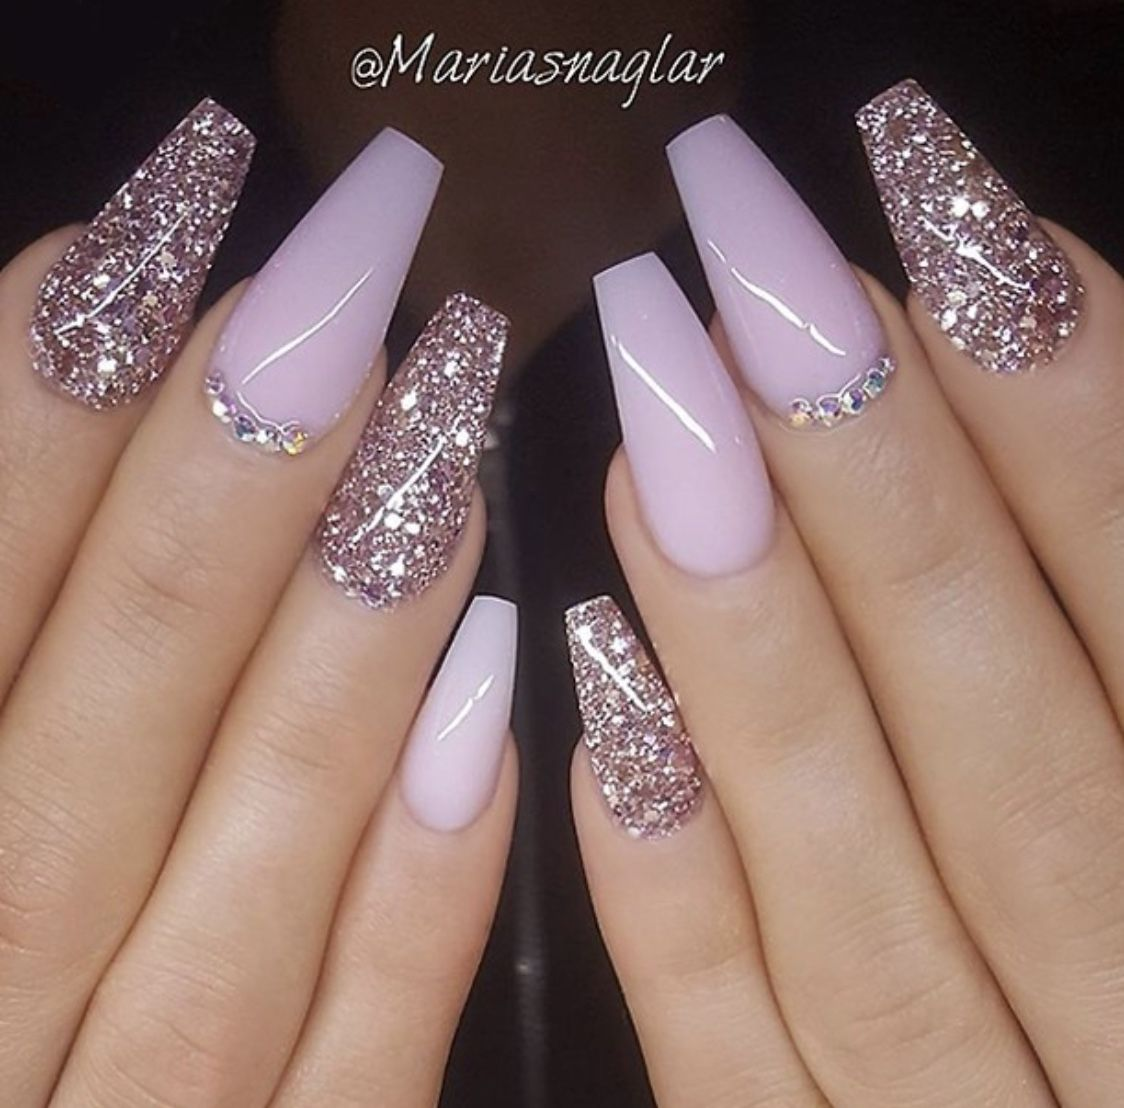 Branmakeyou Tattoo Street Fashion Food Sport Fitness Cosmetics Nails And Much More With Images Coffin Nails Long Pink Nails Coffin Nails Designs